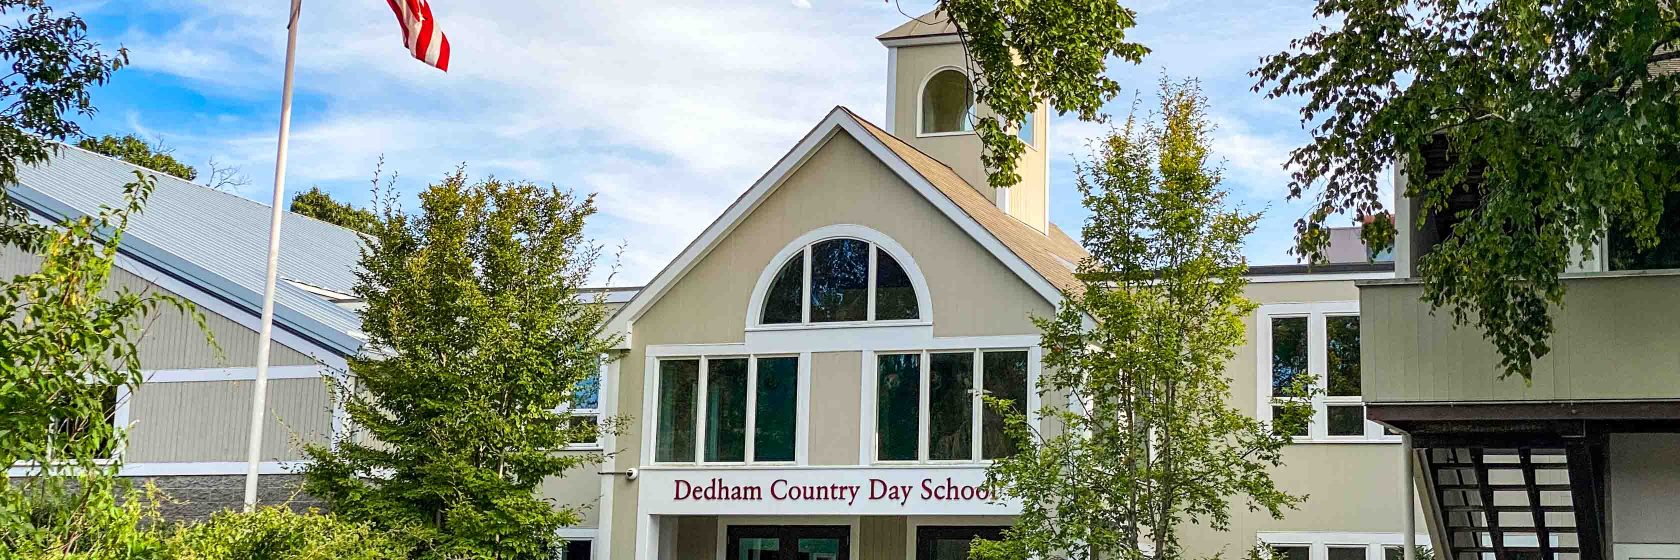 An exterior view of the main building on Dedham Country Day School campus.